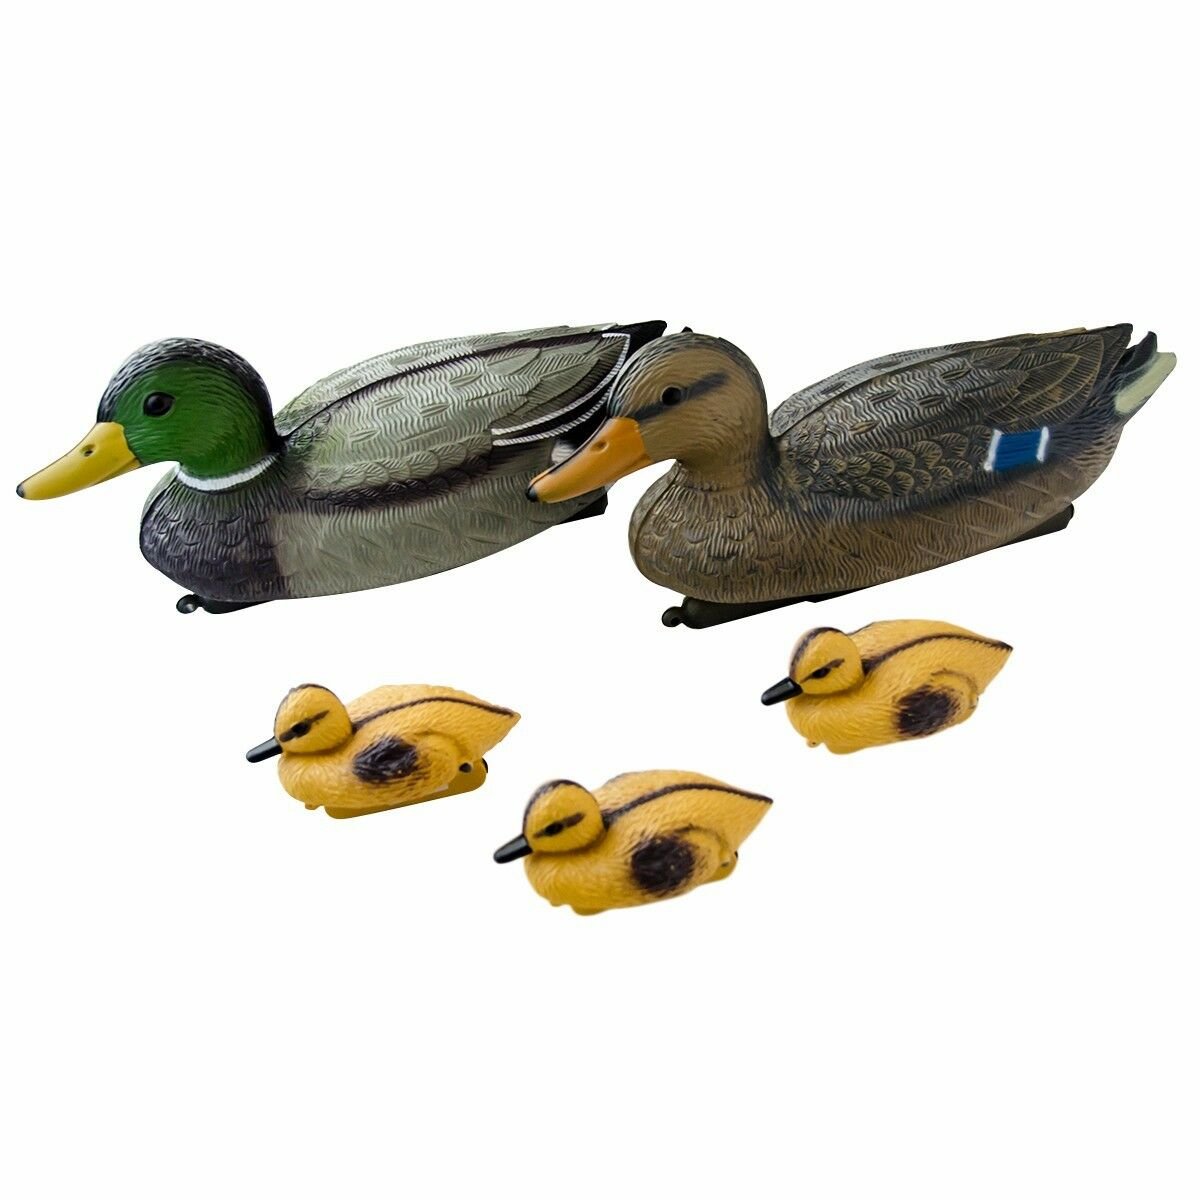 Floating Lifesize Mallard Ducks & Ducklings Decoys For Fish / Koi Ponds